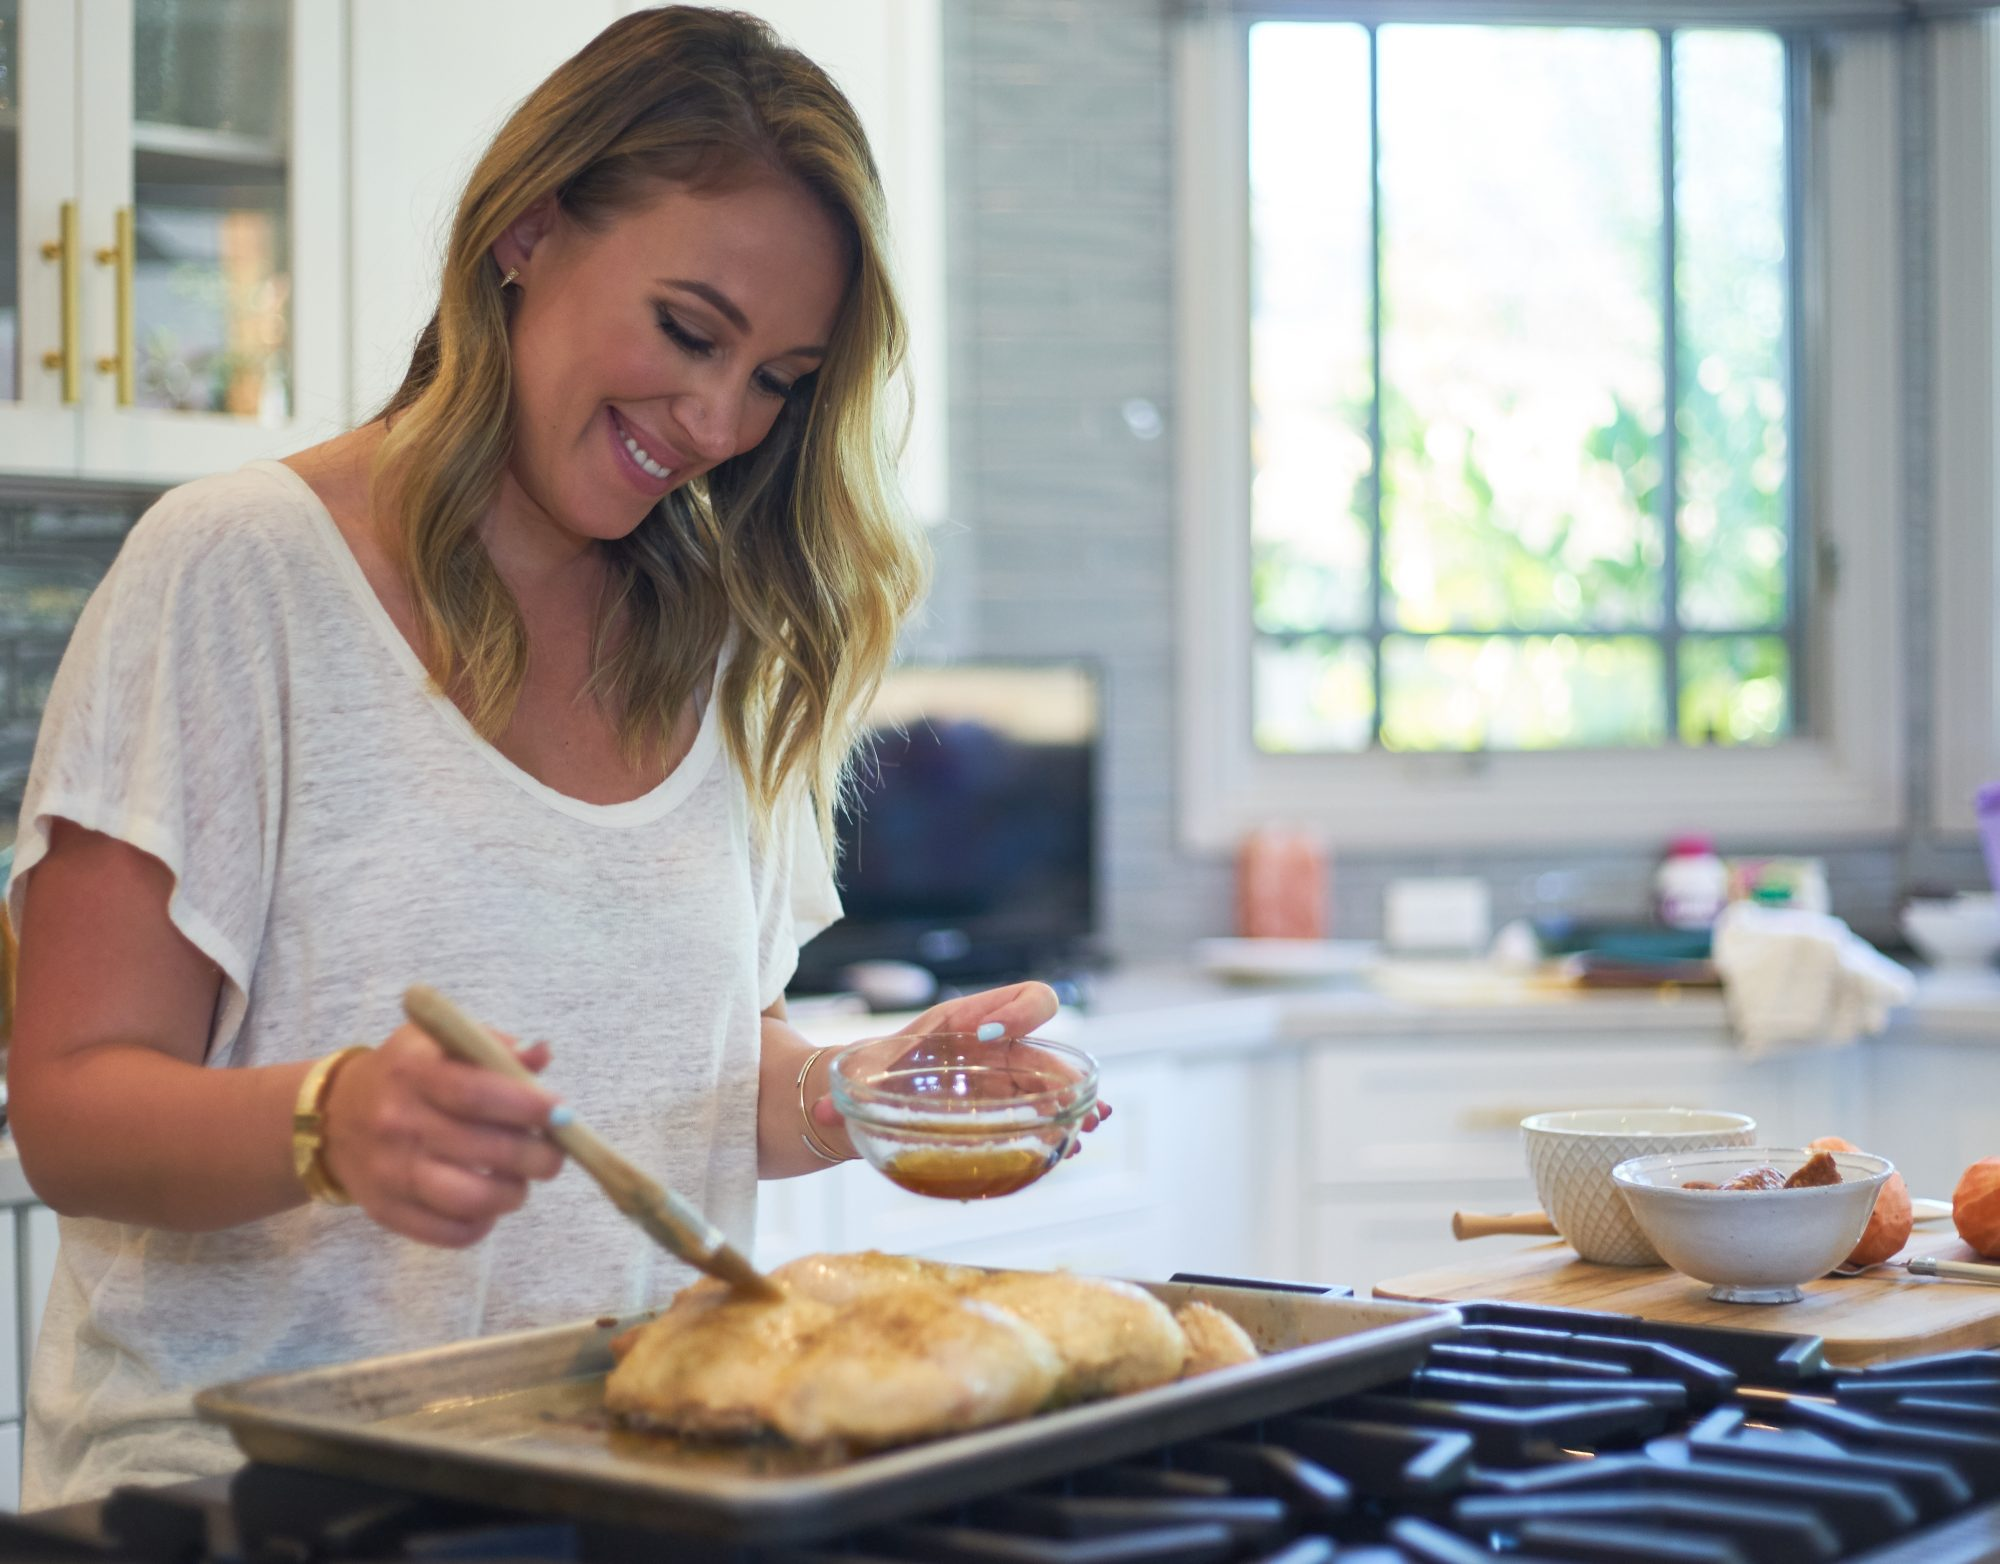 haylie-duff-cooking-image